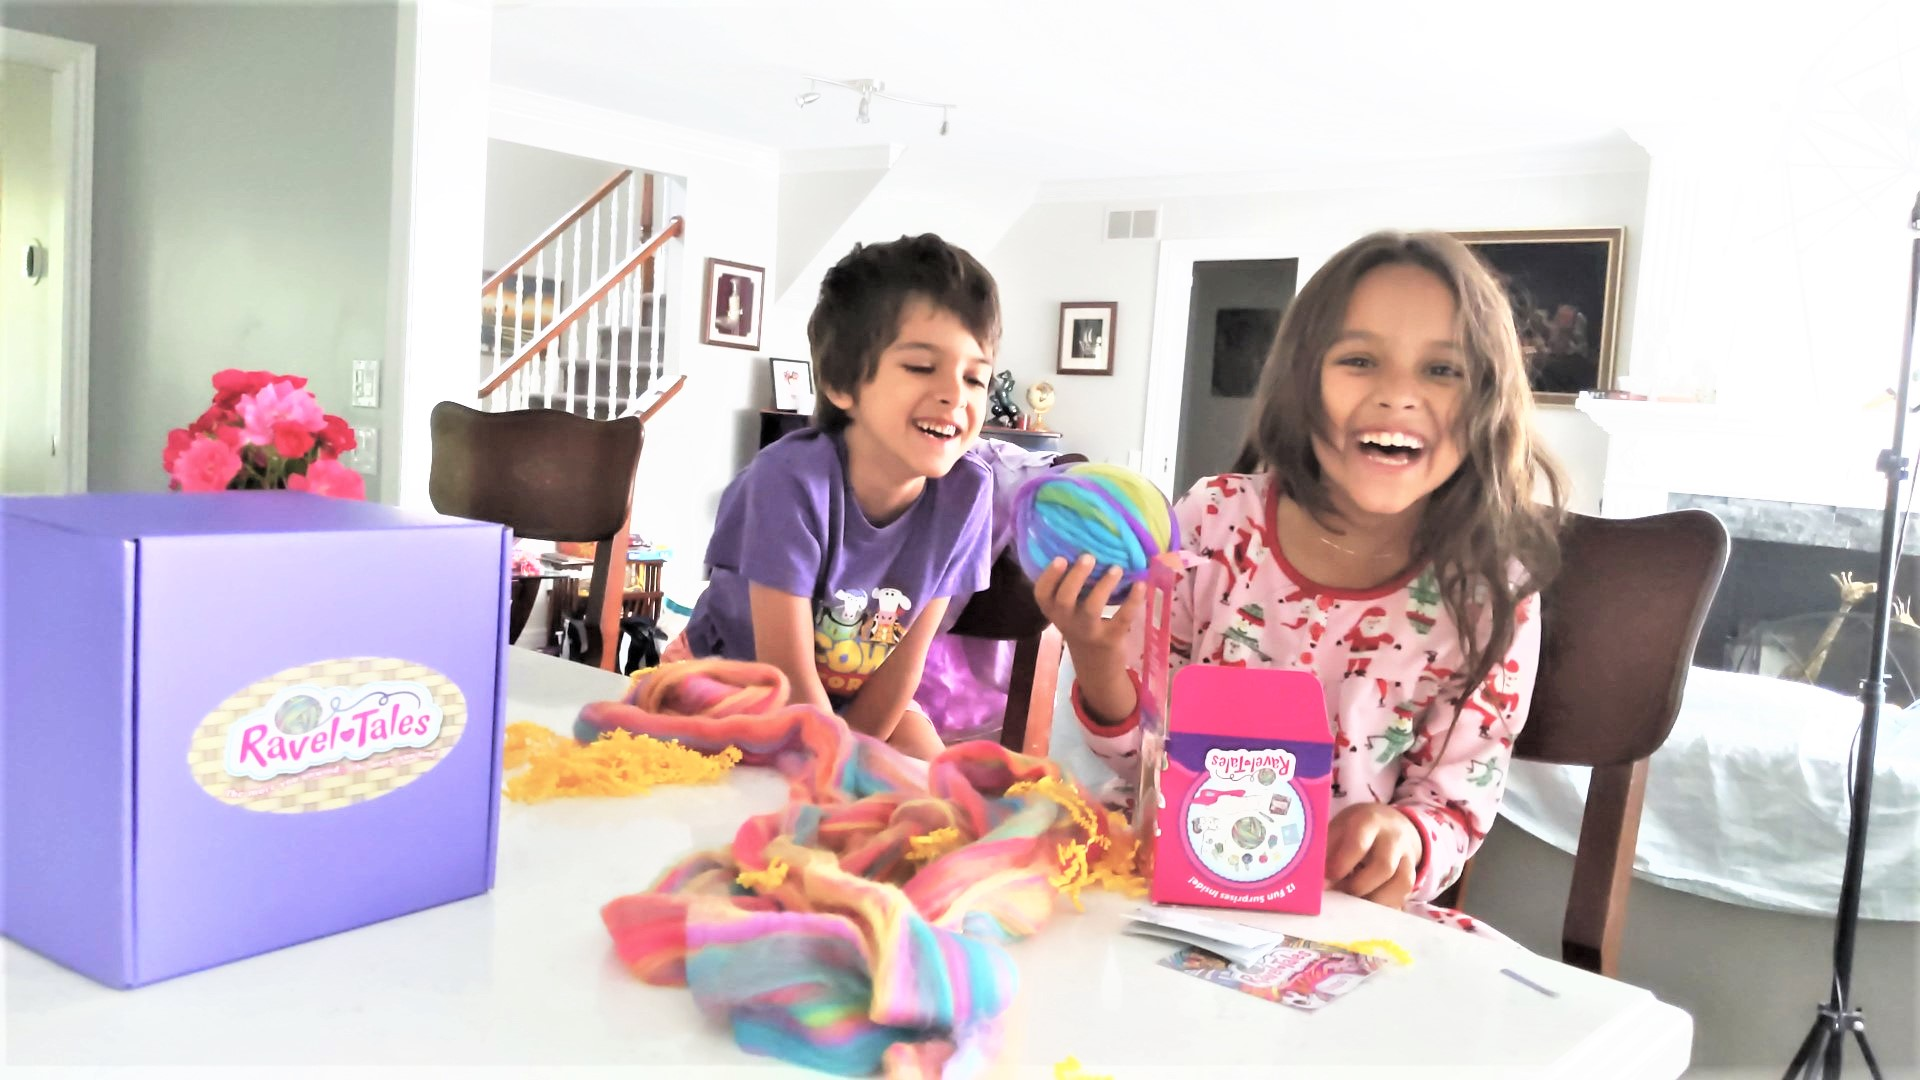 Girl and boy laughing at Ravel Tales toys for kids under 10 years of age